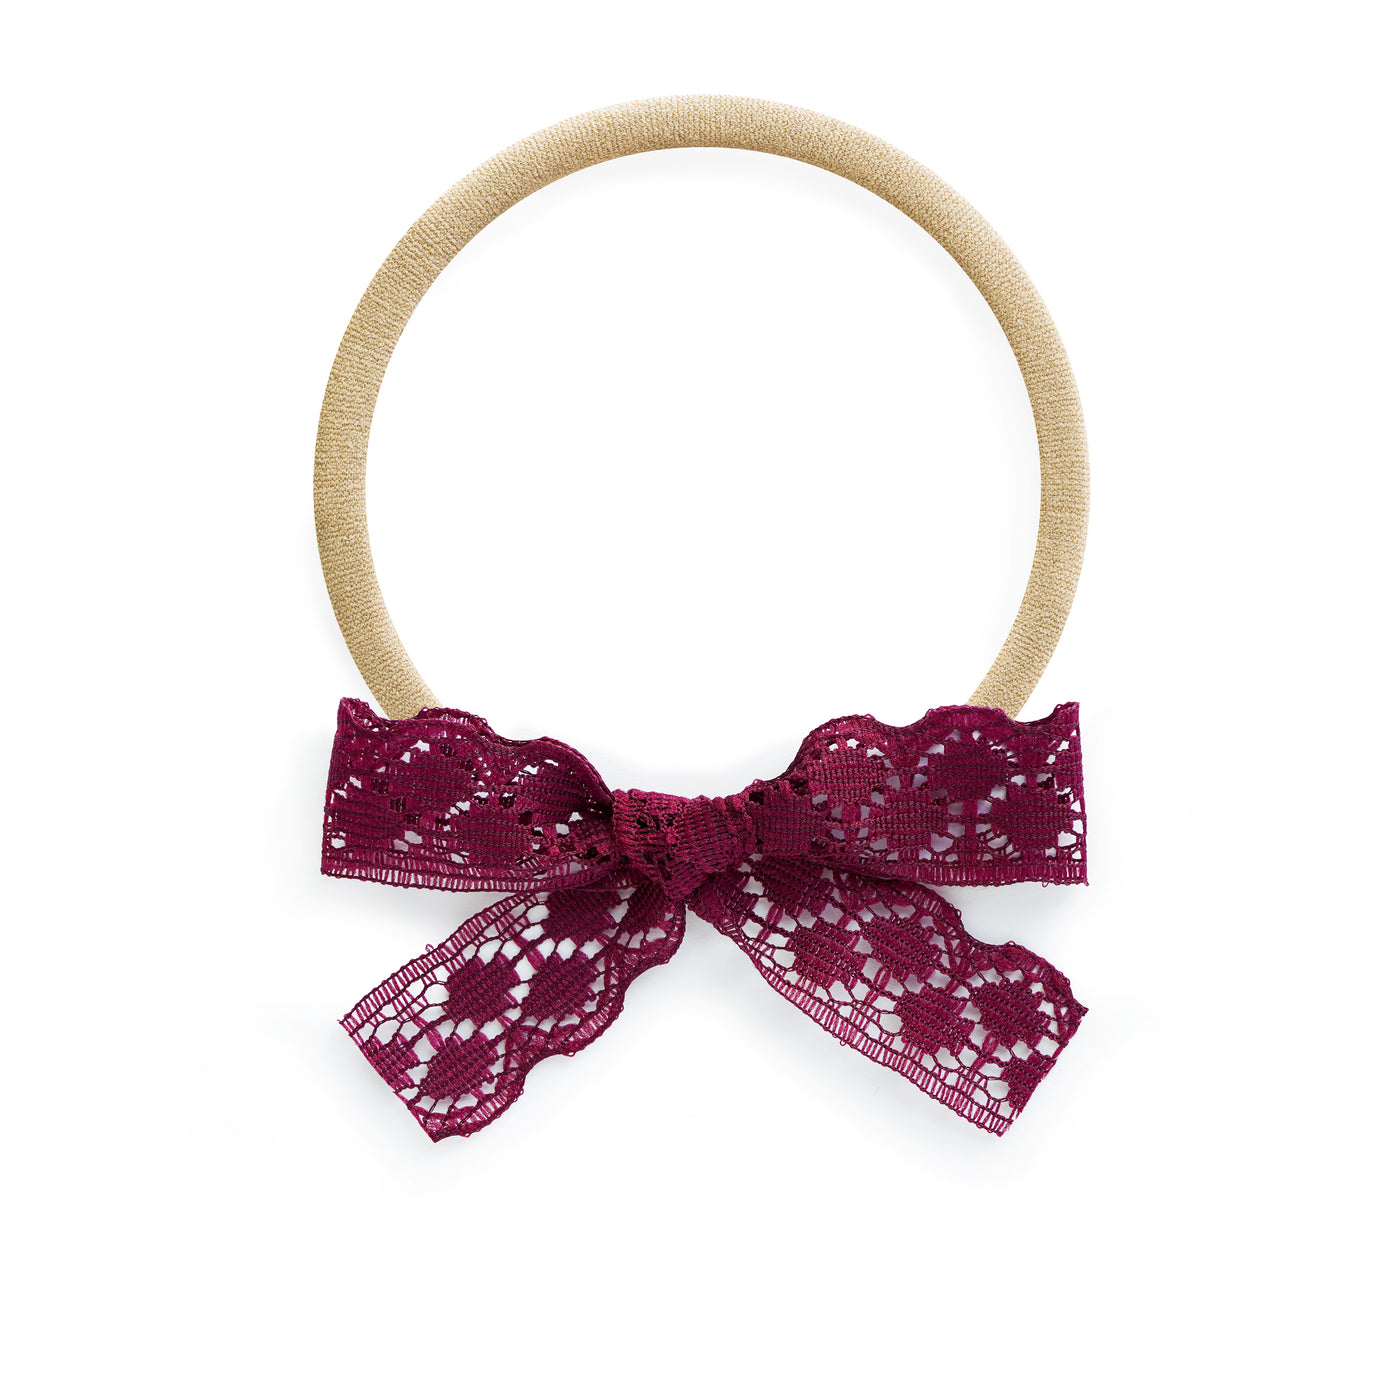 village baby lace penelope bow deep pink maroon burgundy pretty accessory baby headband stretchy